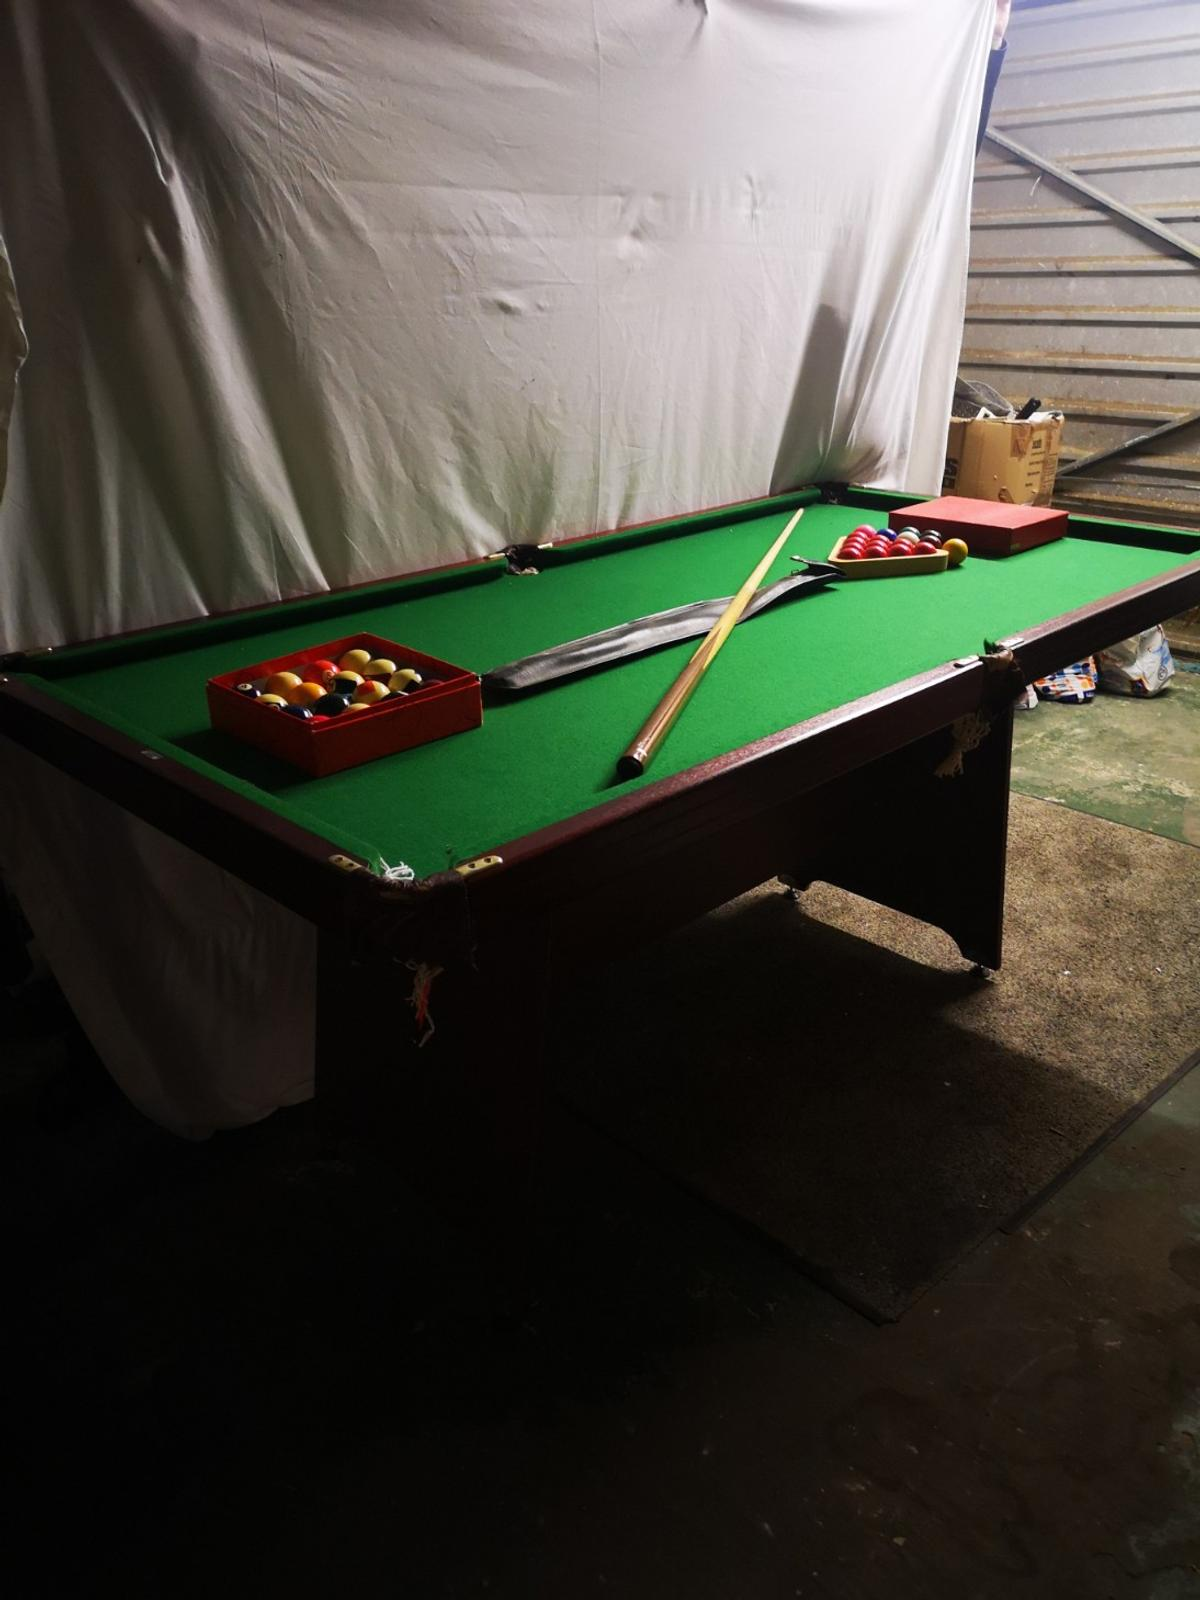 6ft by 3 ft, snooker and billiards, classic and good condition.